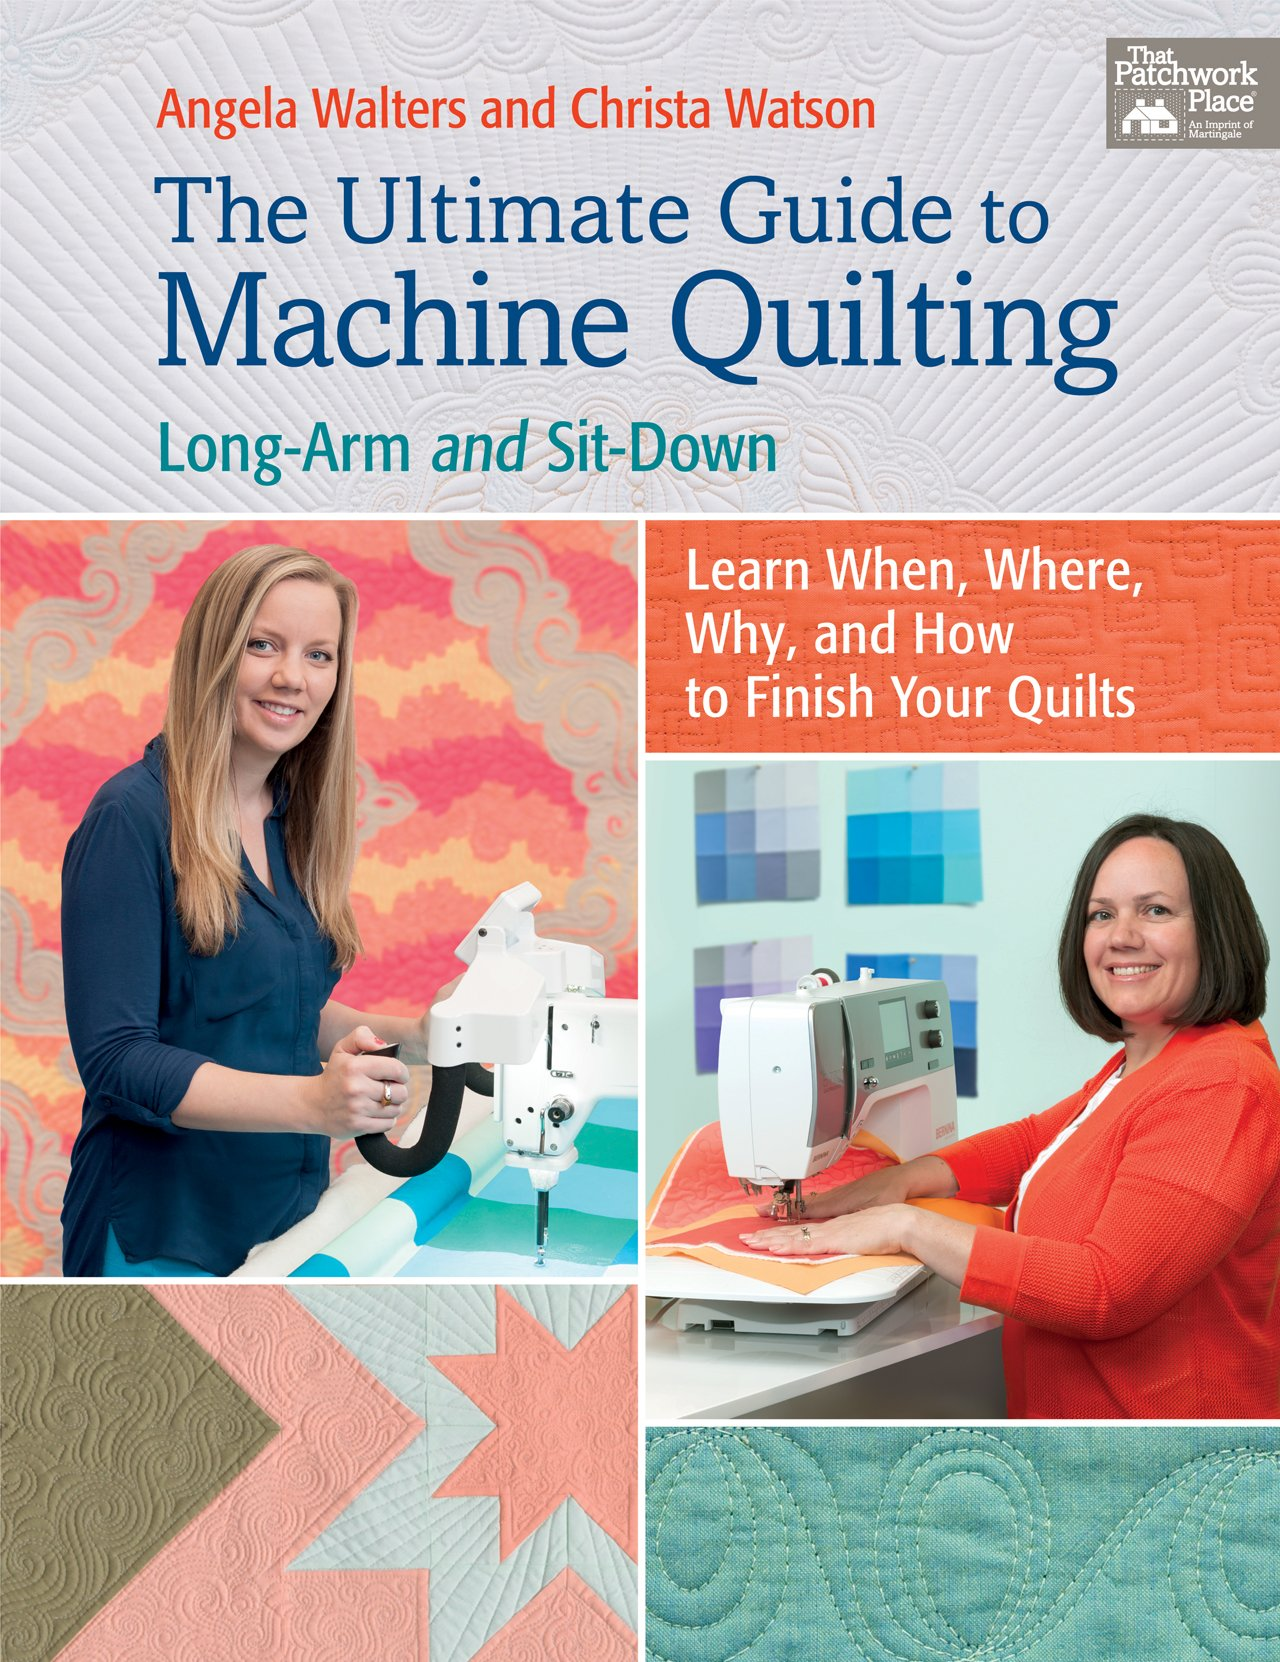 The Ultimate Guide to Machine Quilting by Christa Watson and Angela Walters